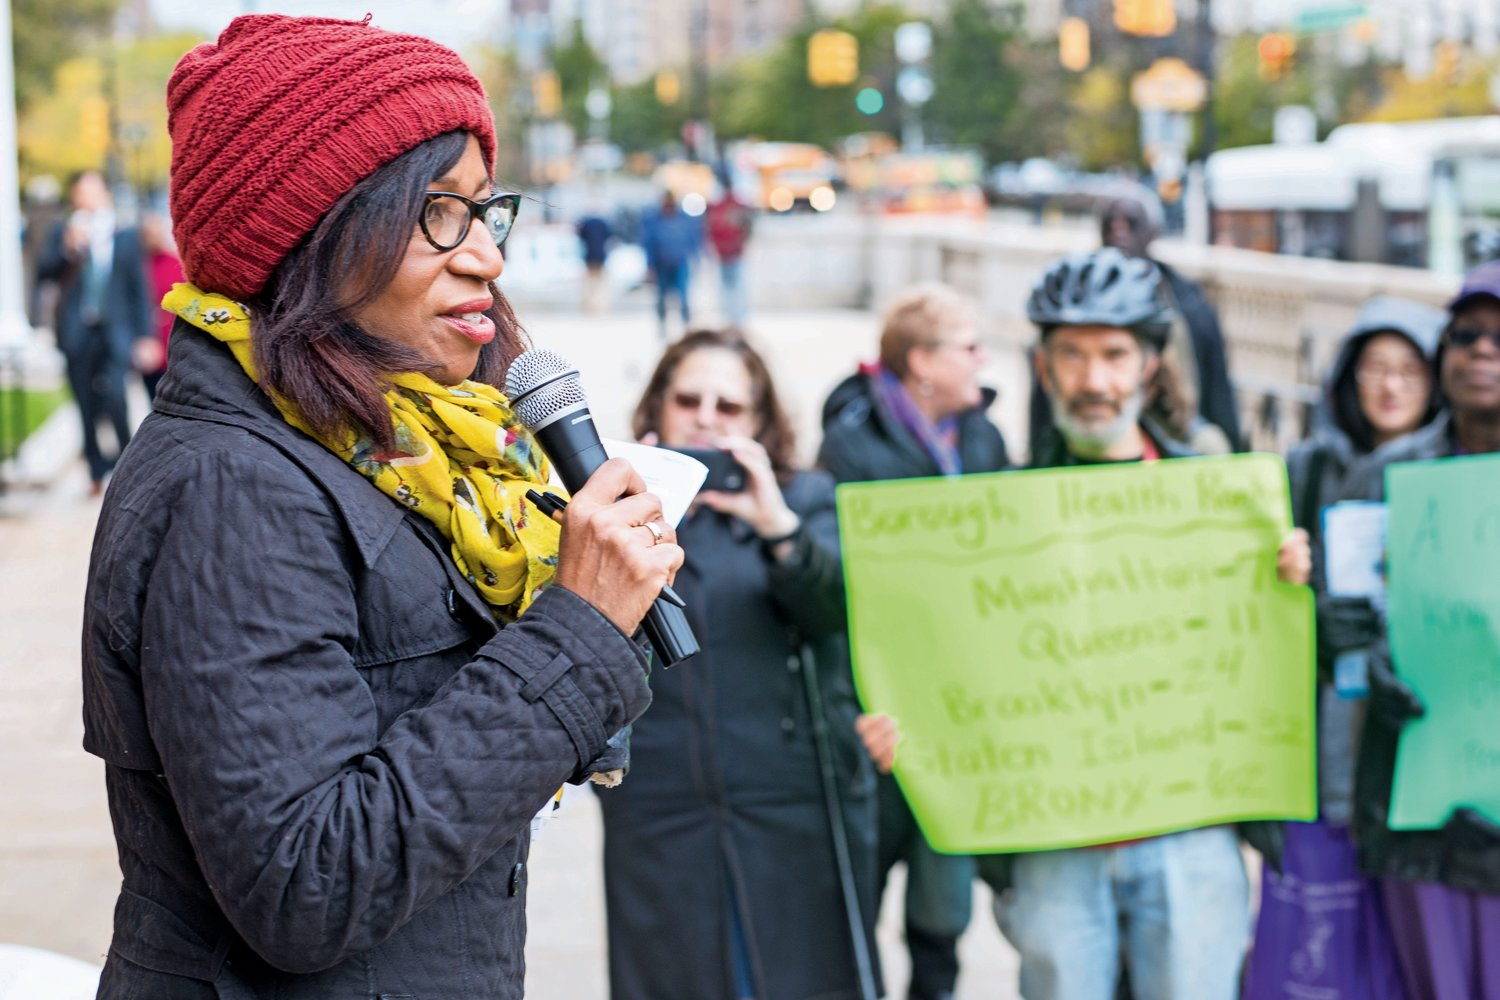 Charmaine Ruddock, the project director for Bronx Health Reach, speaks at a rally calling for improvements in healthcare in the Bronx, which ranks last out of the 62 counties in New York State in the County Health Rankings and Roadmaps Report.